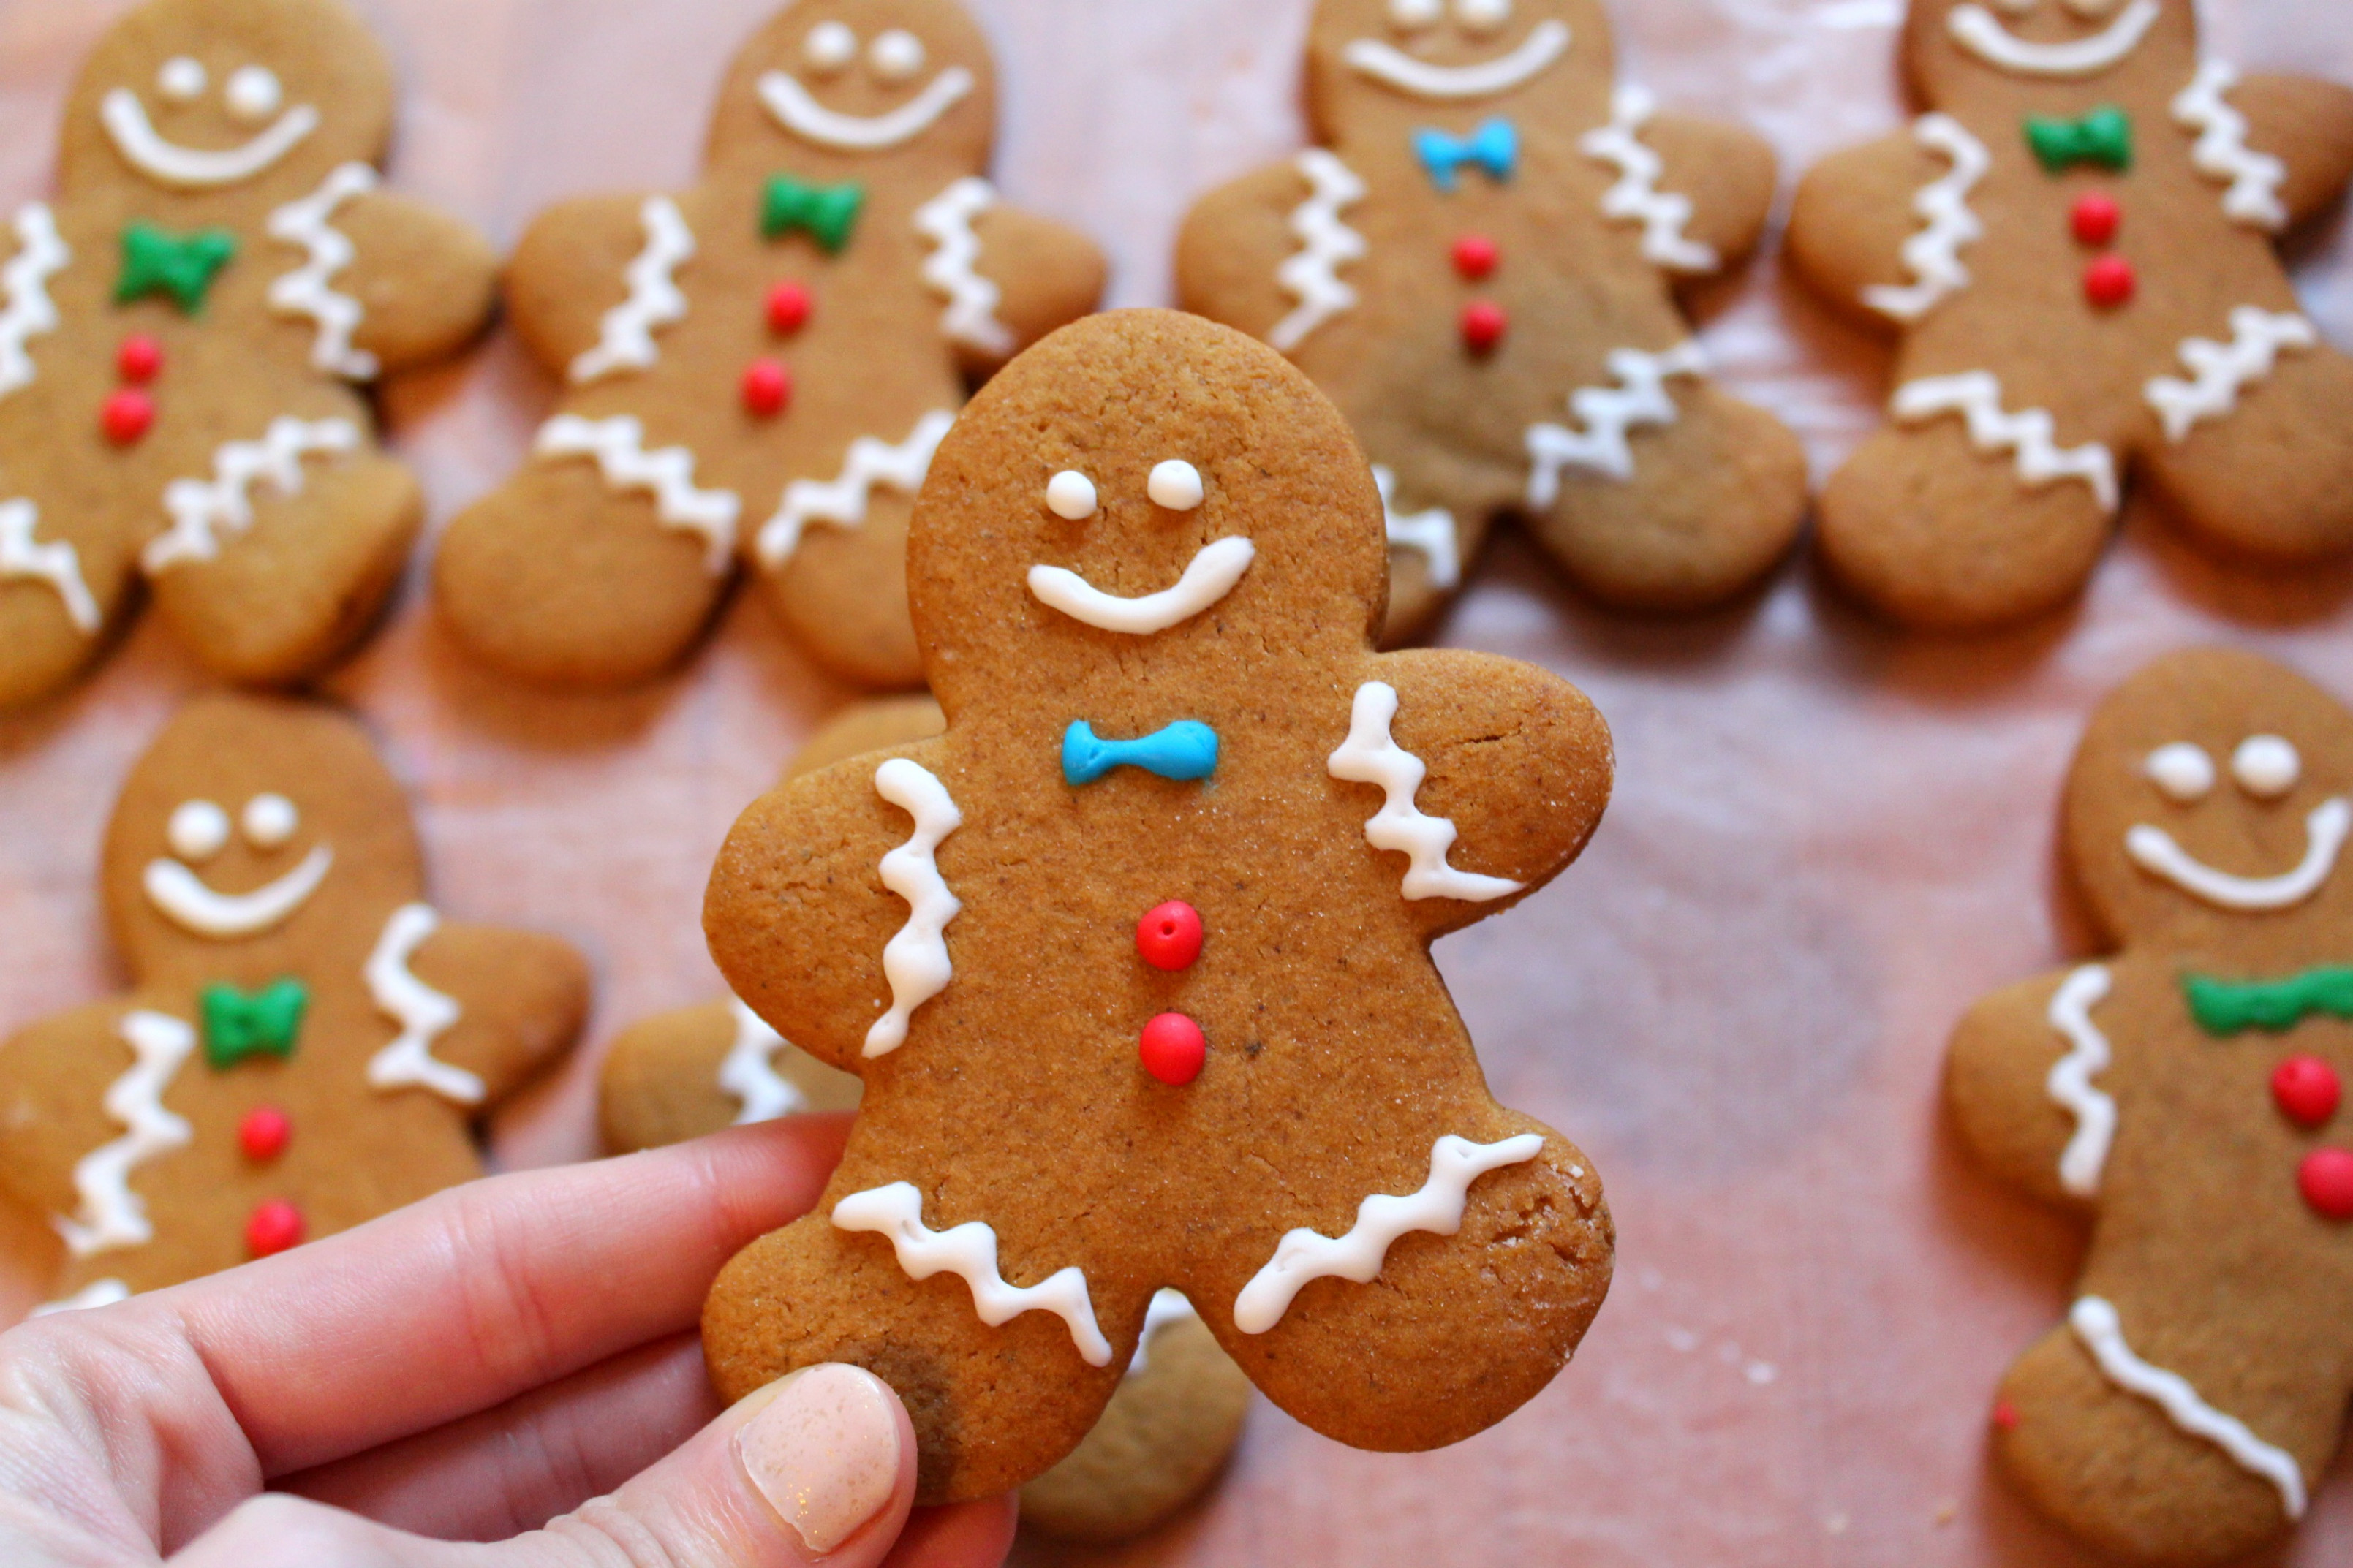 Five Healthier Holiday Cookie Recipes - Empowered Fitness